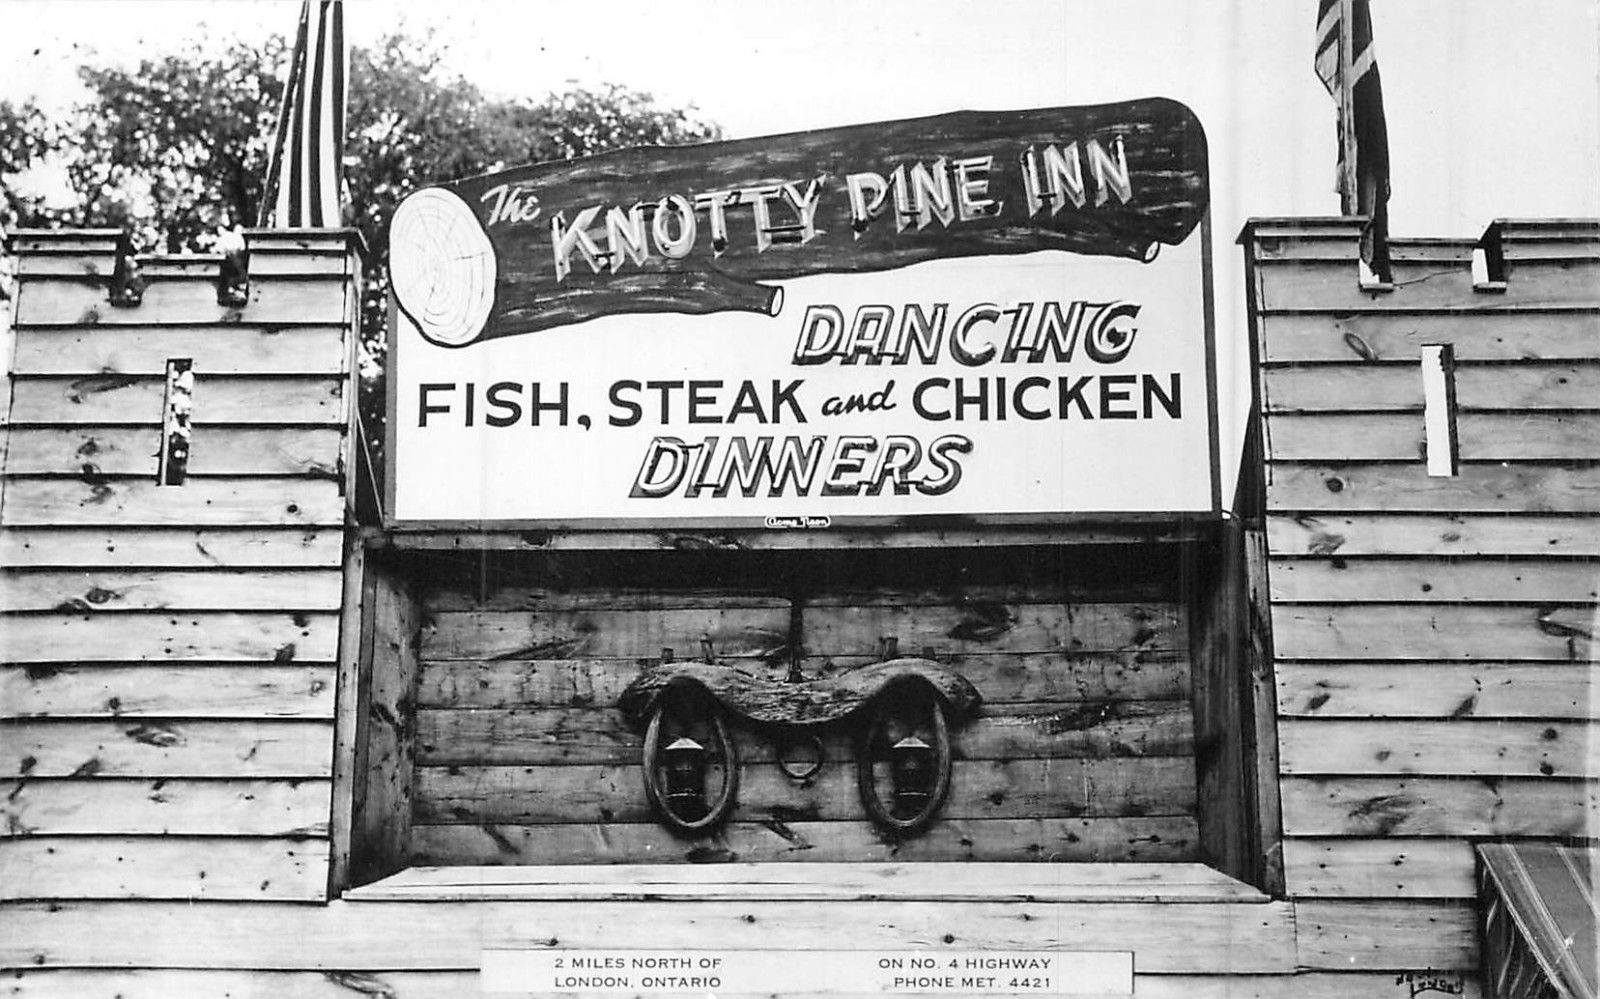 """A wooden building with a sign that says """"Knotty Pine Inn Dancing Fish, Steak, and Chicken Dinners"""""""